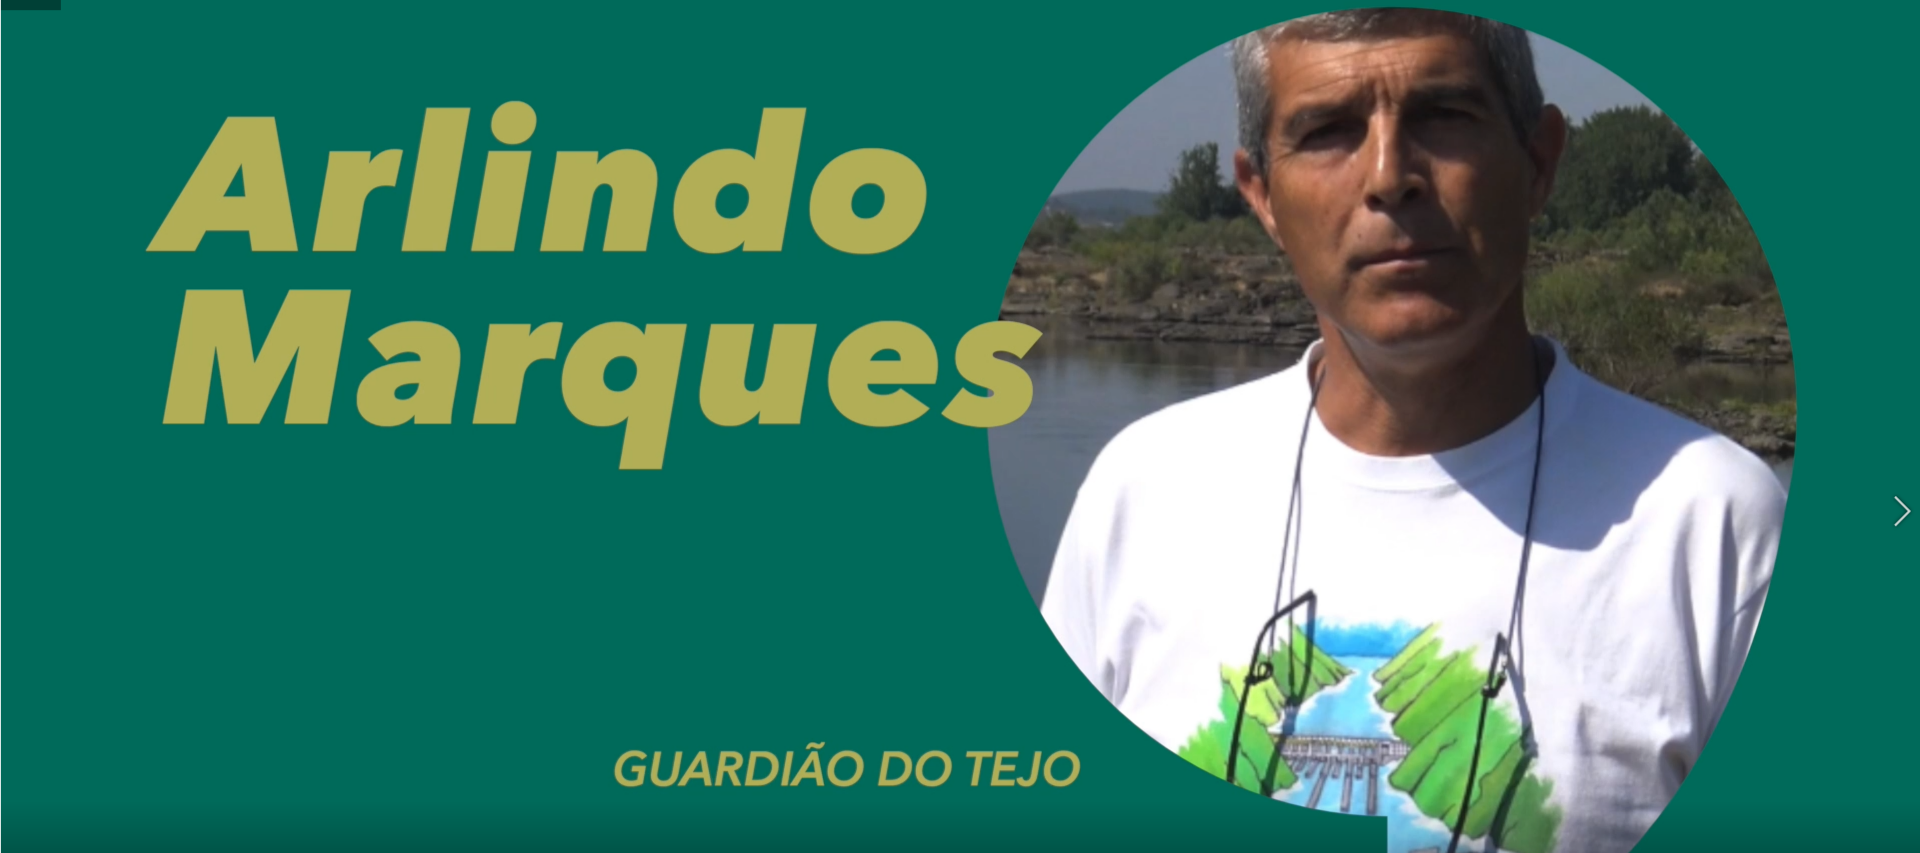 A luta do Guardião do Tejo